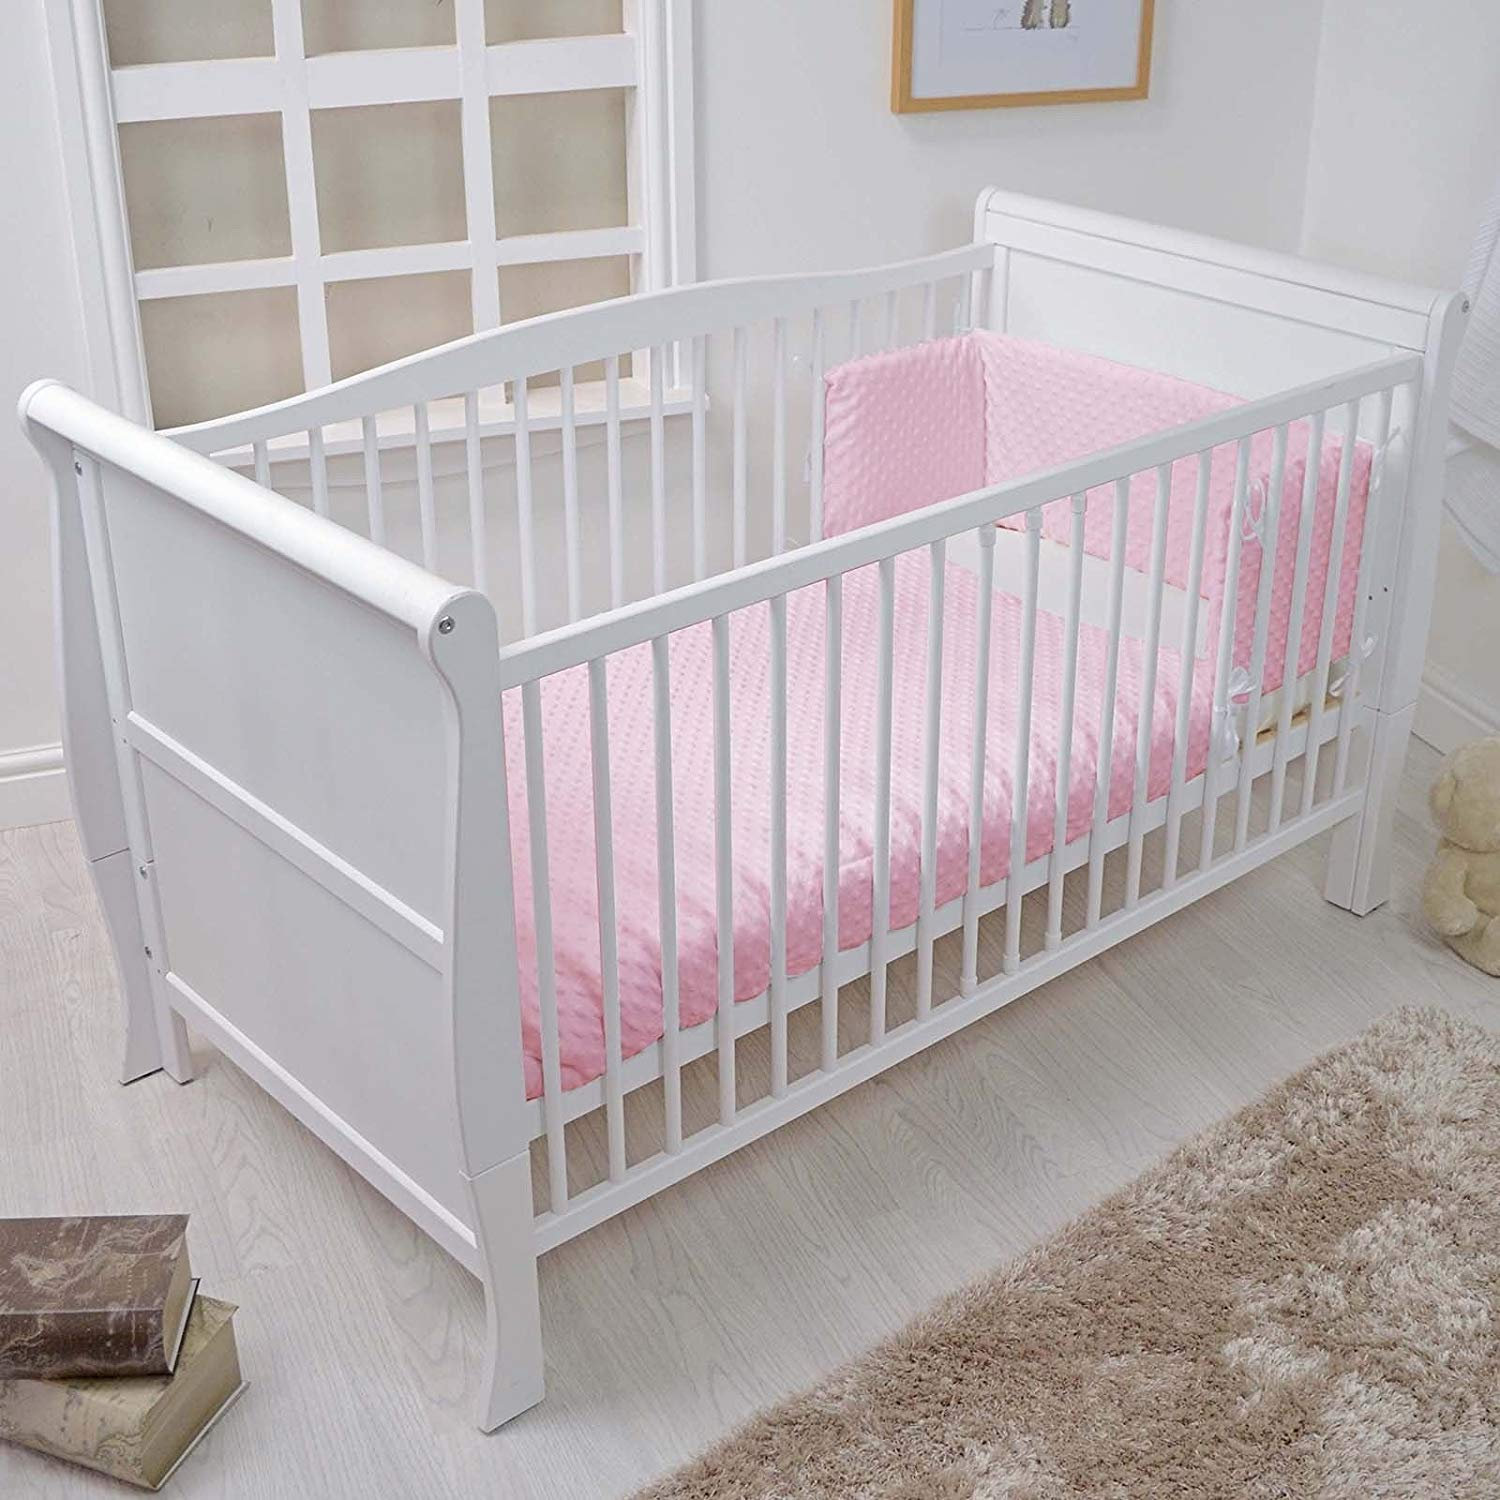 White Solid Sleigh Style Cot Bed /& Deluxe Foam or Sprung Mattress Converts into a Junior Bed Cot Bed with Sprung Mattress no Drawer